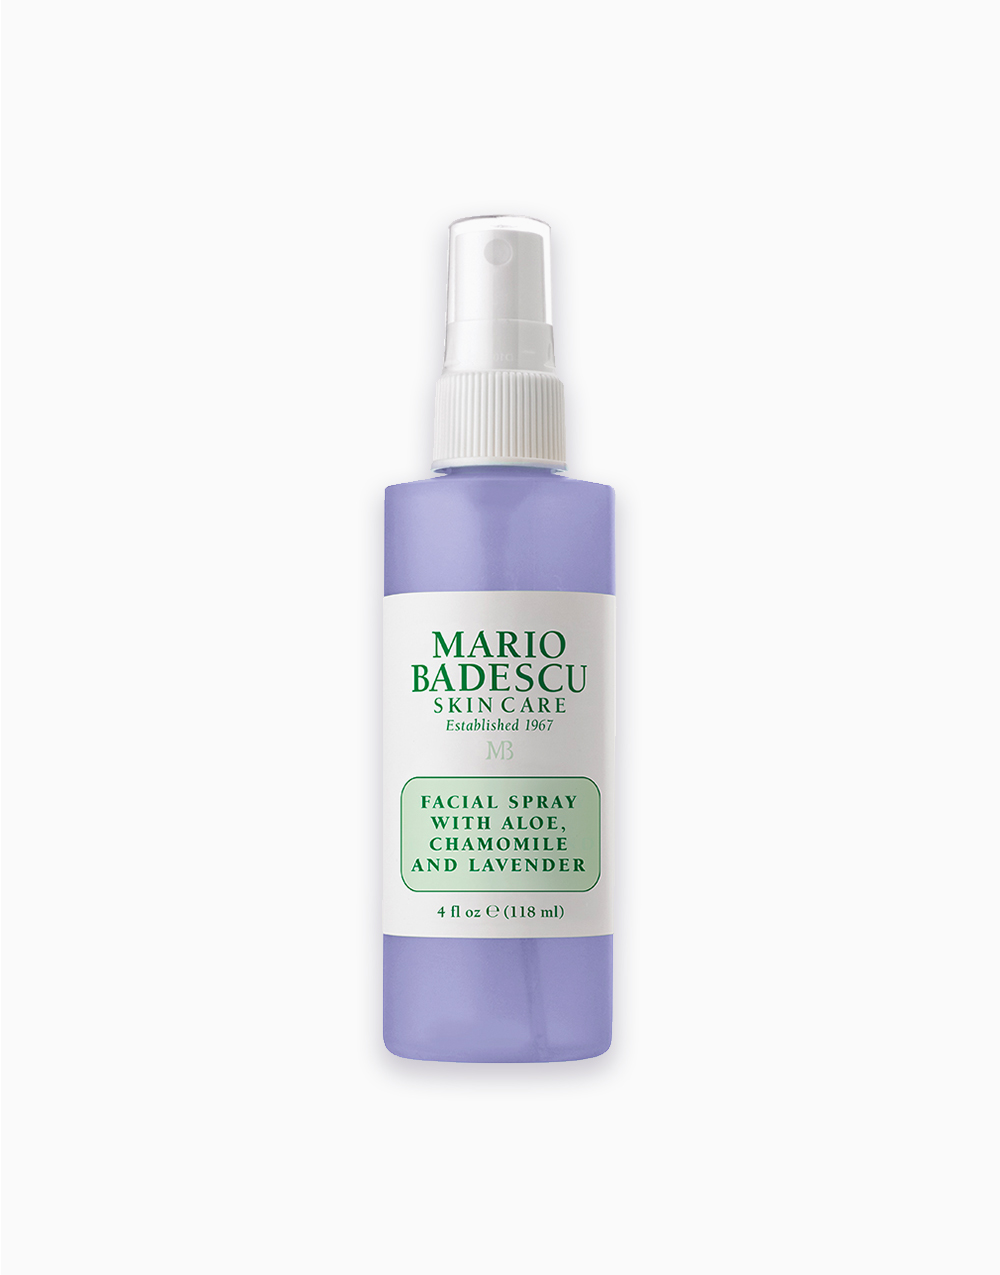 Facial Spray with Aloe, Chamomile and Lavender (4oz) by Mario Badescu